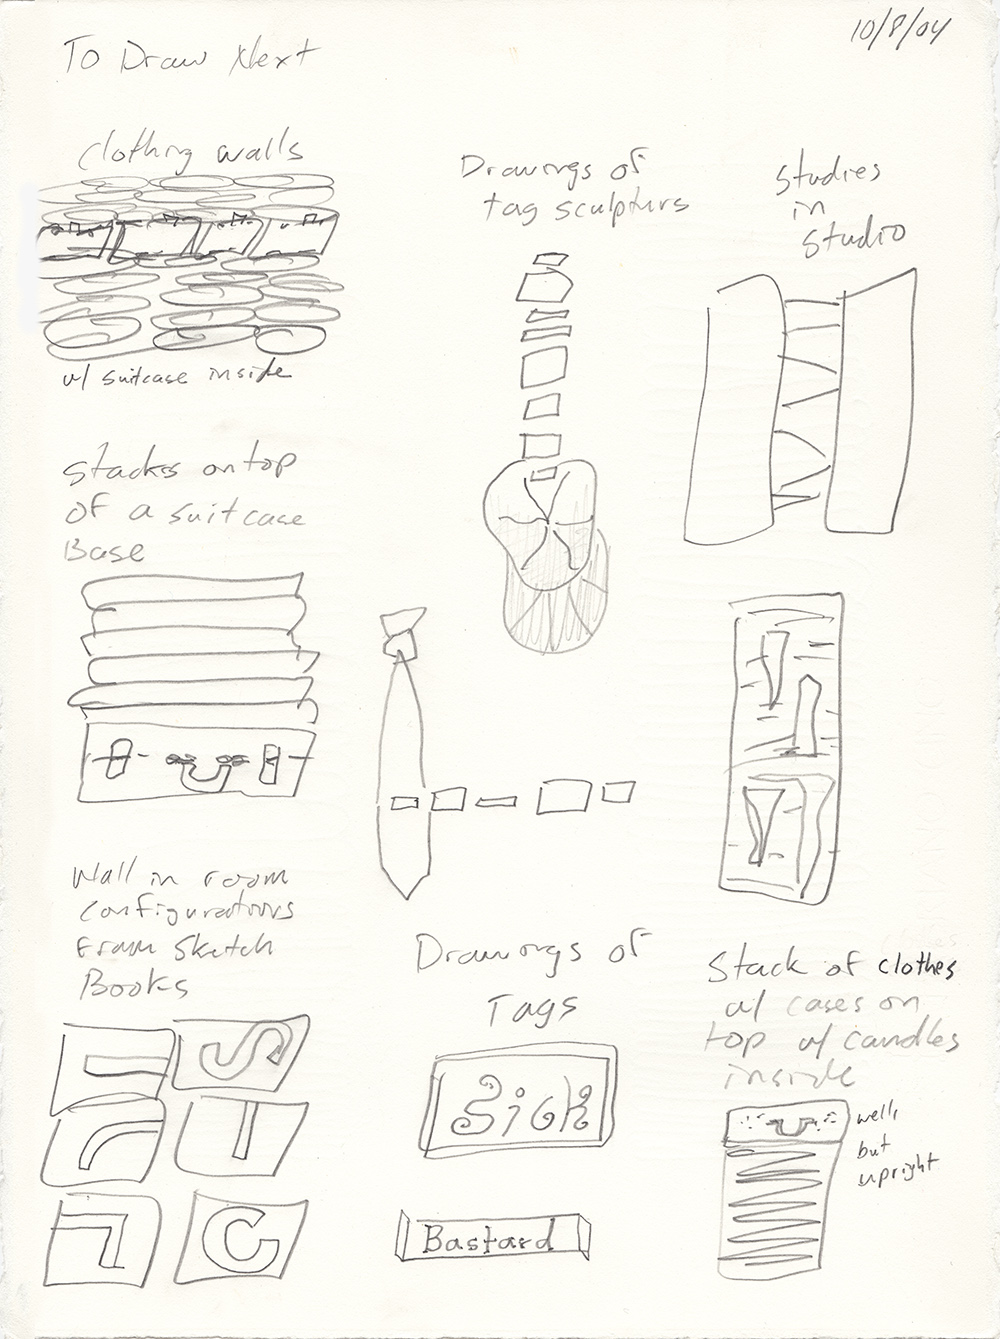 Clothing Sculpture Drawings: To Draw Next, 2004